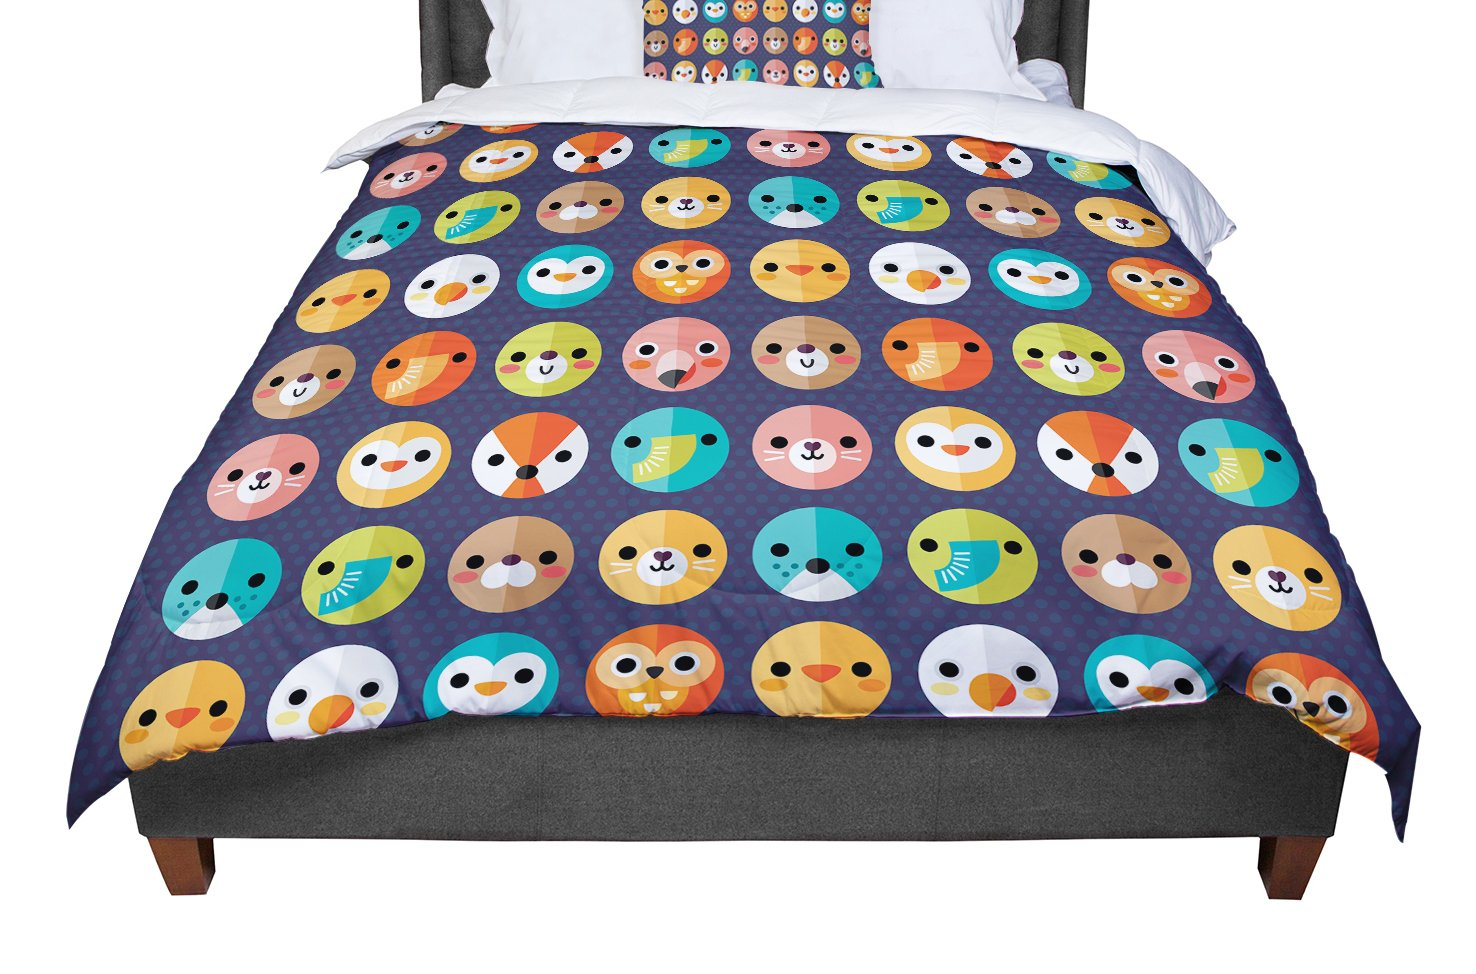 Cal King Comforter 104 X 88 KESS InHouse Daisy Beatrice Smiley Faces Repeat Animal Pattern King